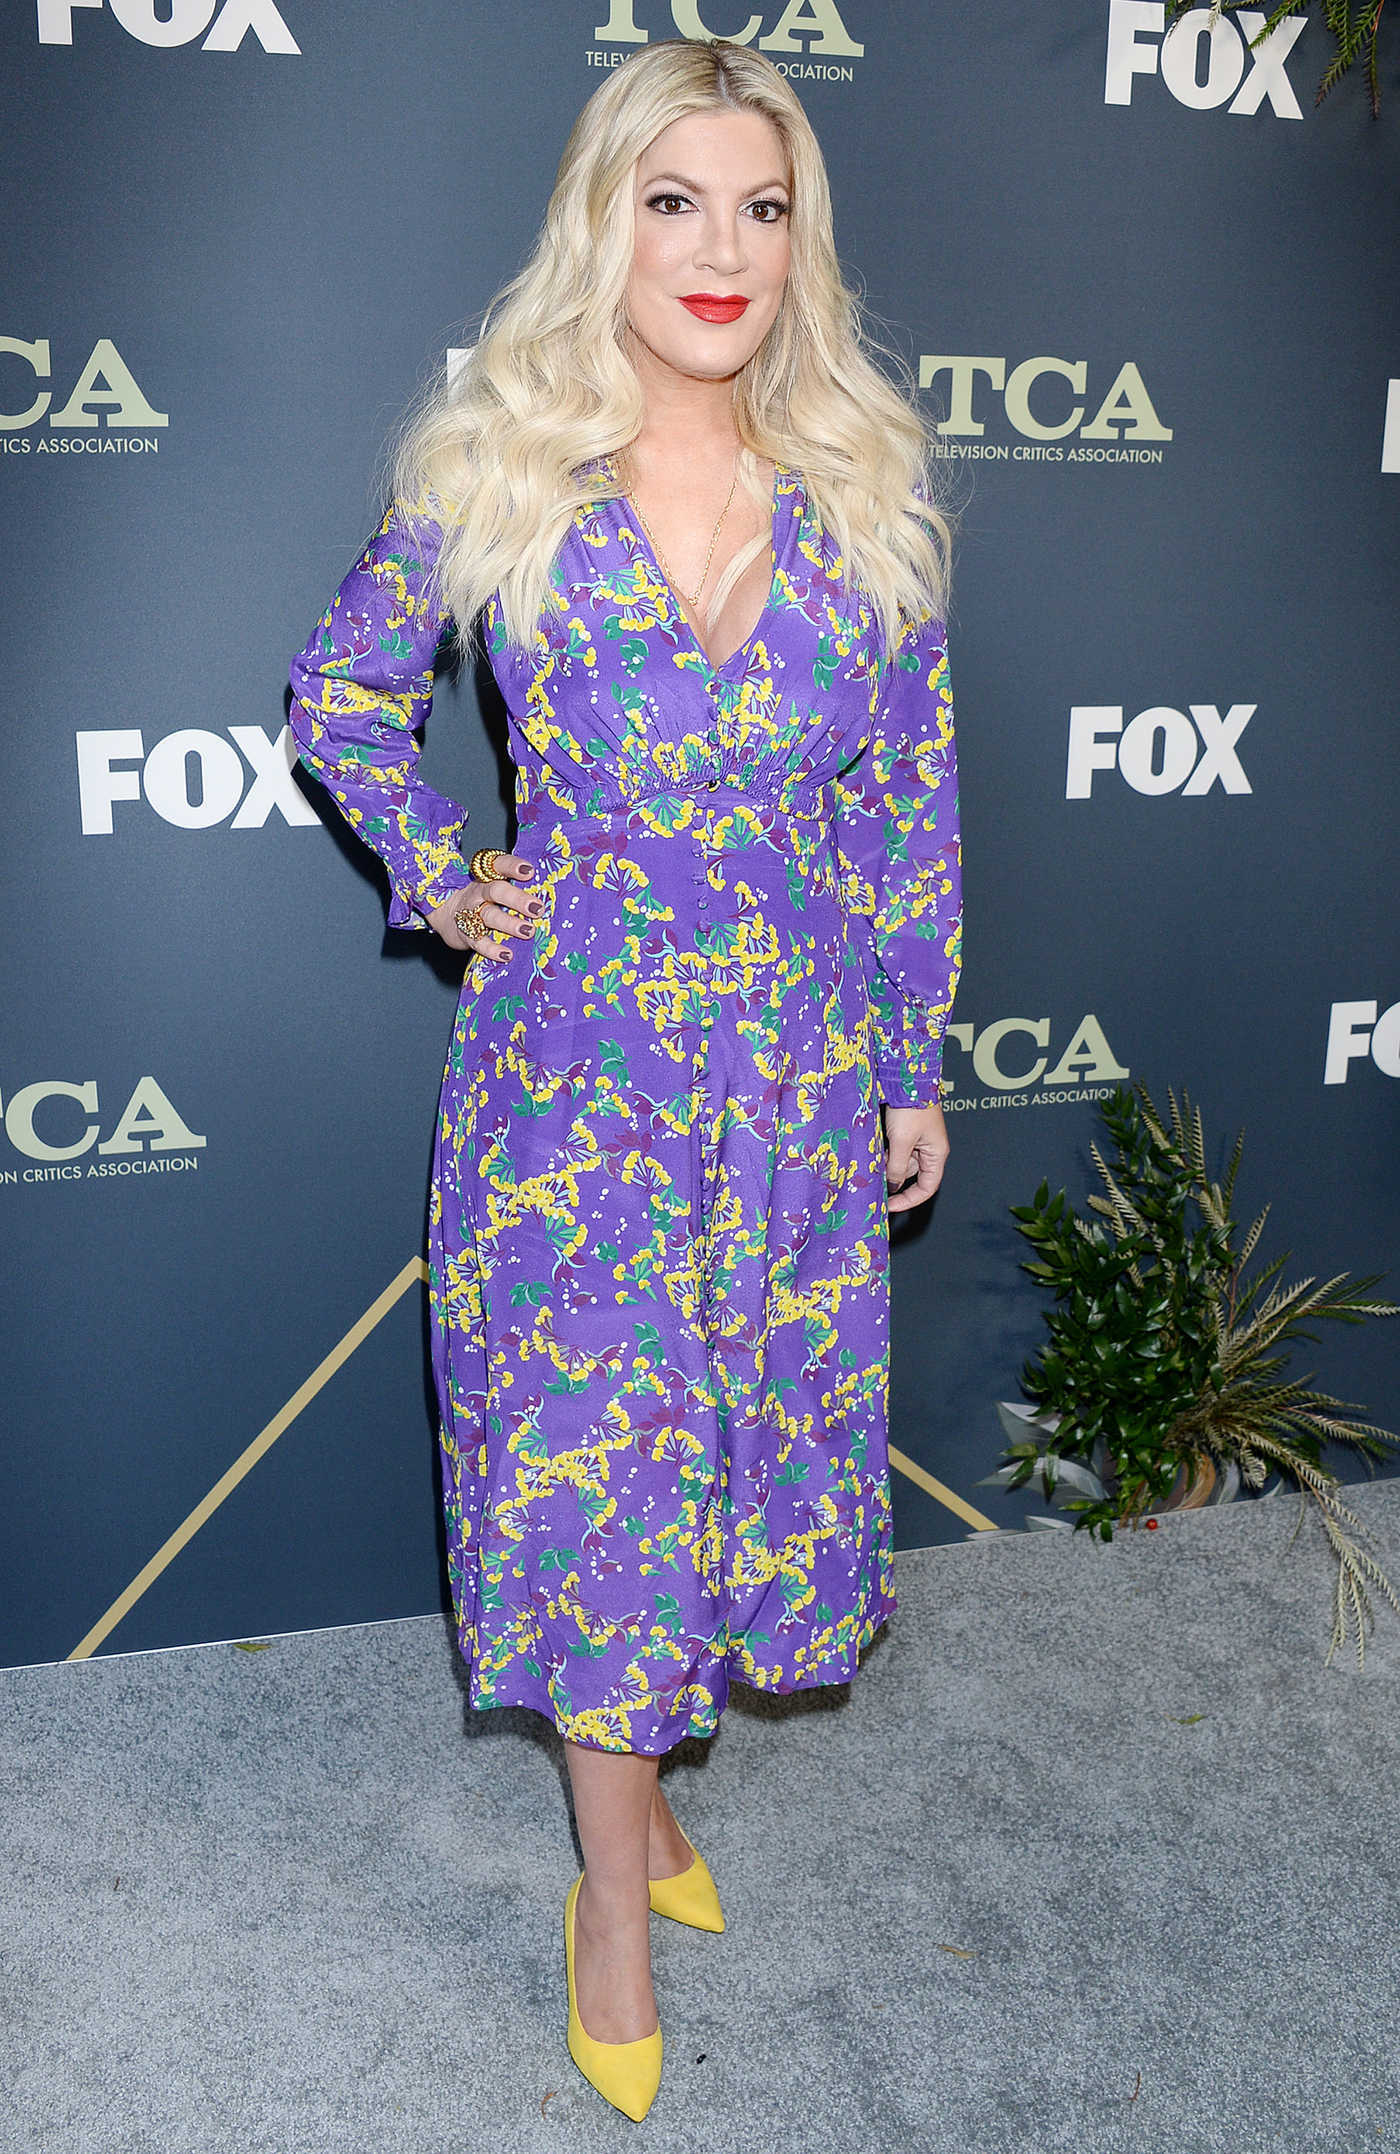 Tori Spelling Attends the Fox Winter TCA at The Fig House in Los Angeles 02/06/2019